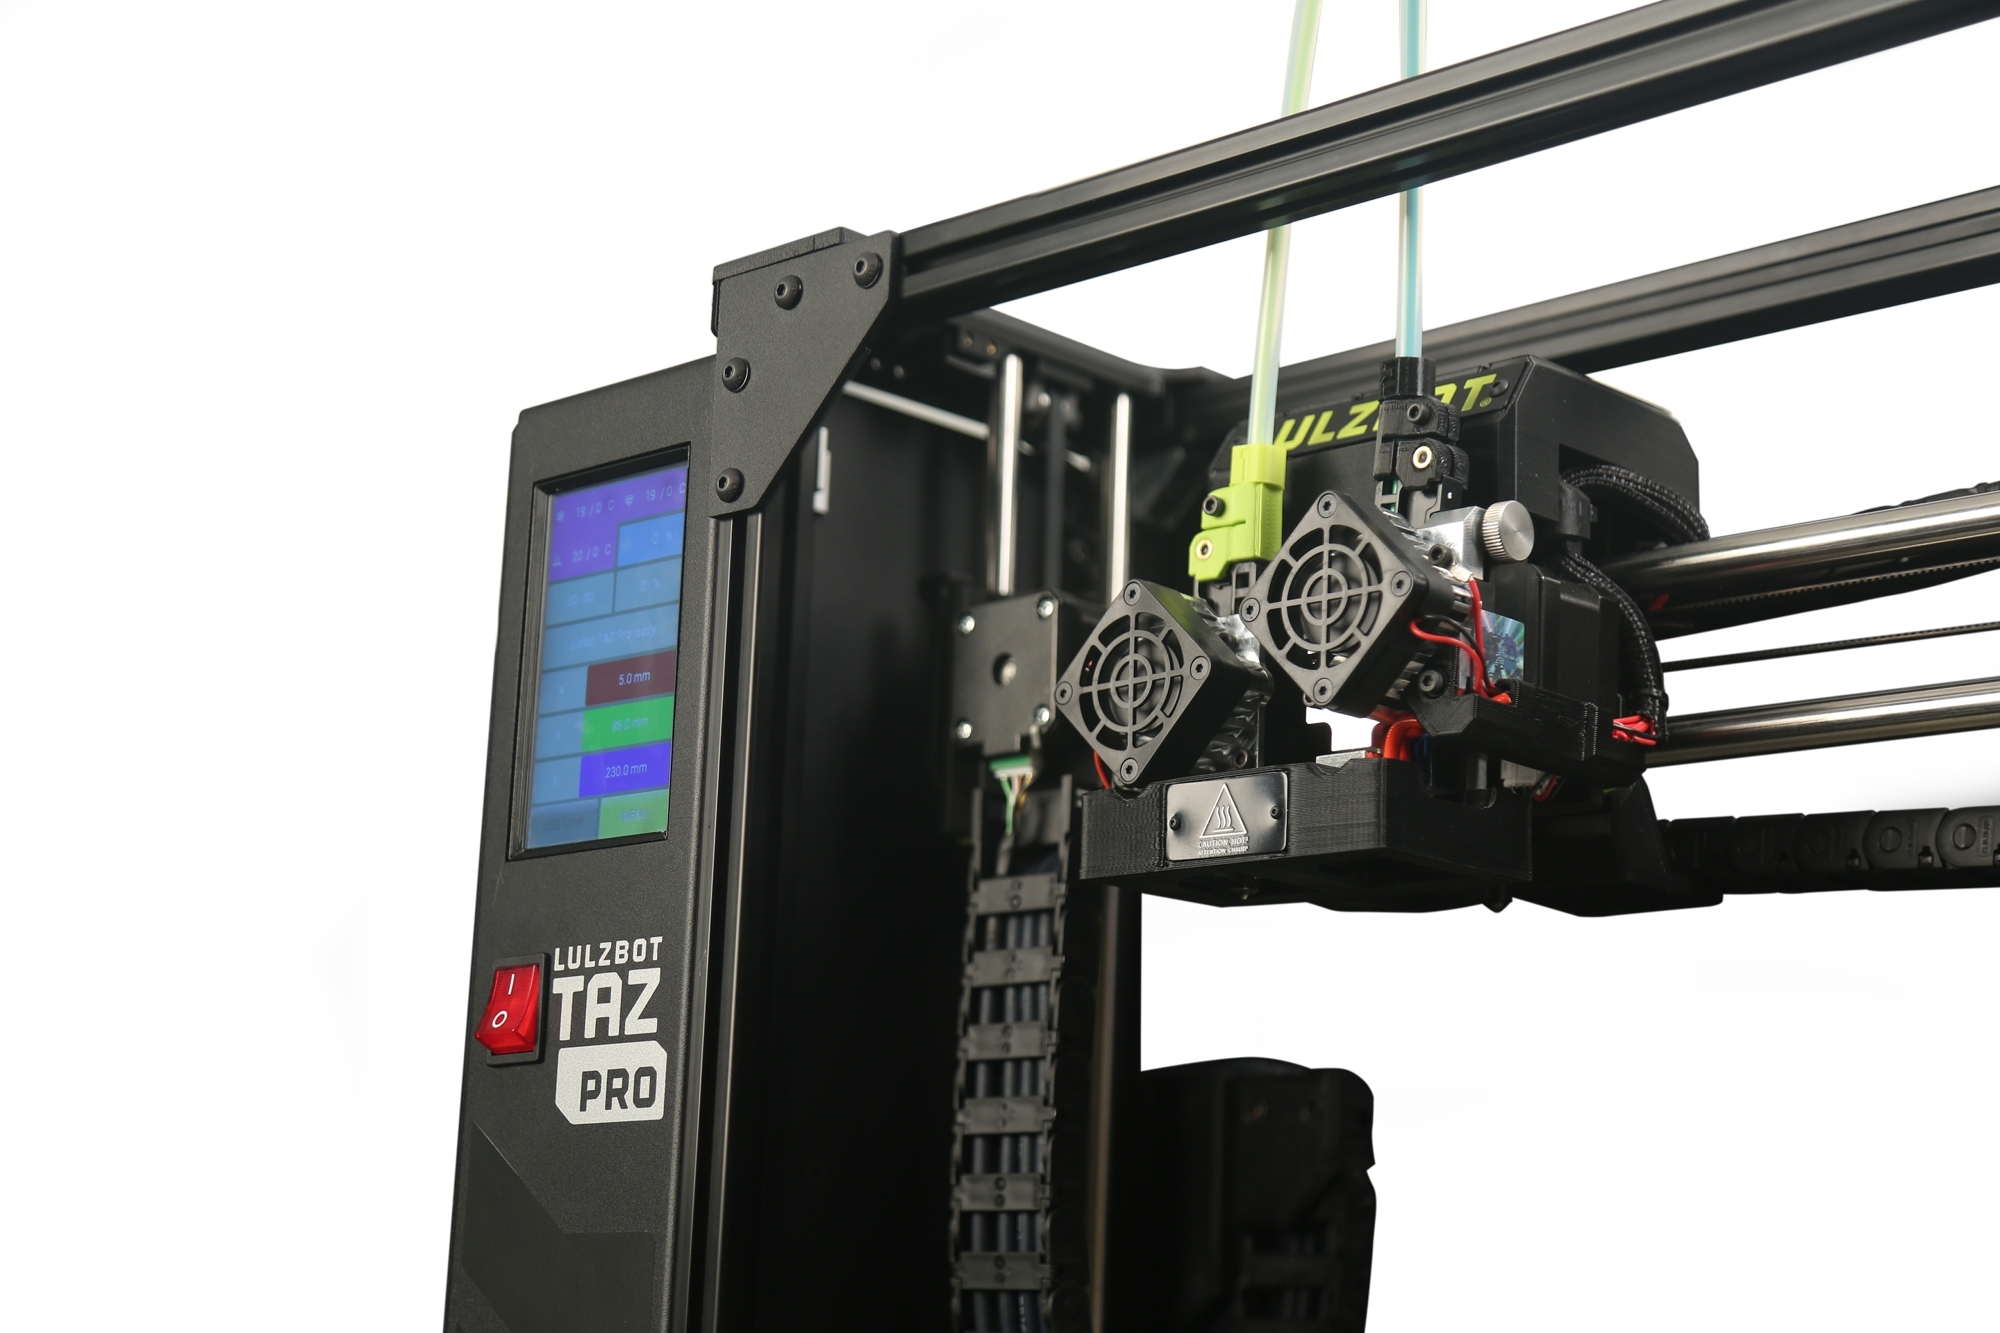 The new LulzBot TAZ Proactive-lifting hot ends and touch screen. Photo via Aleph Objects.